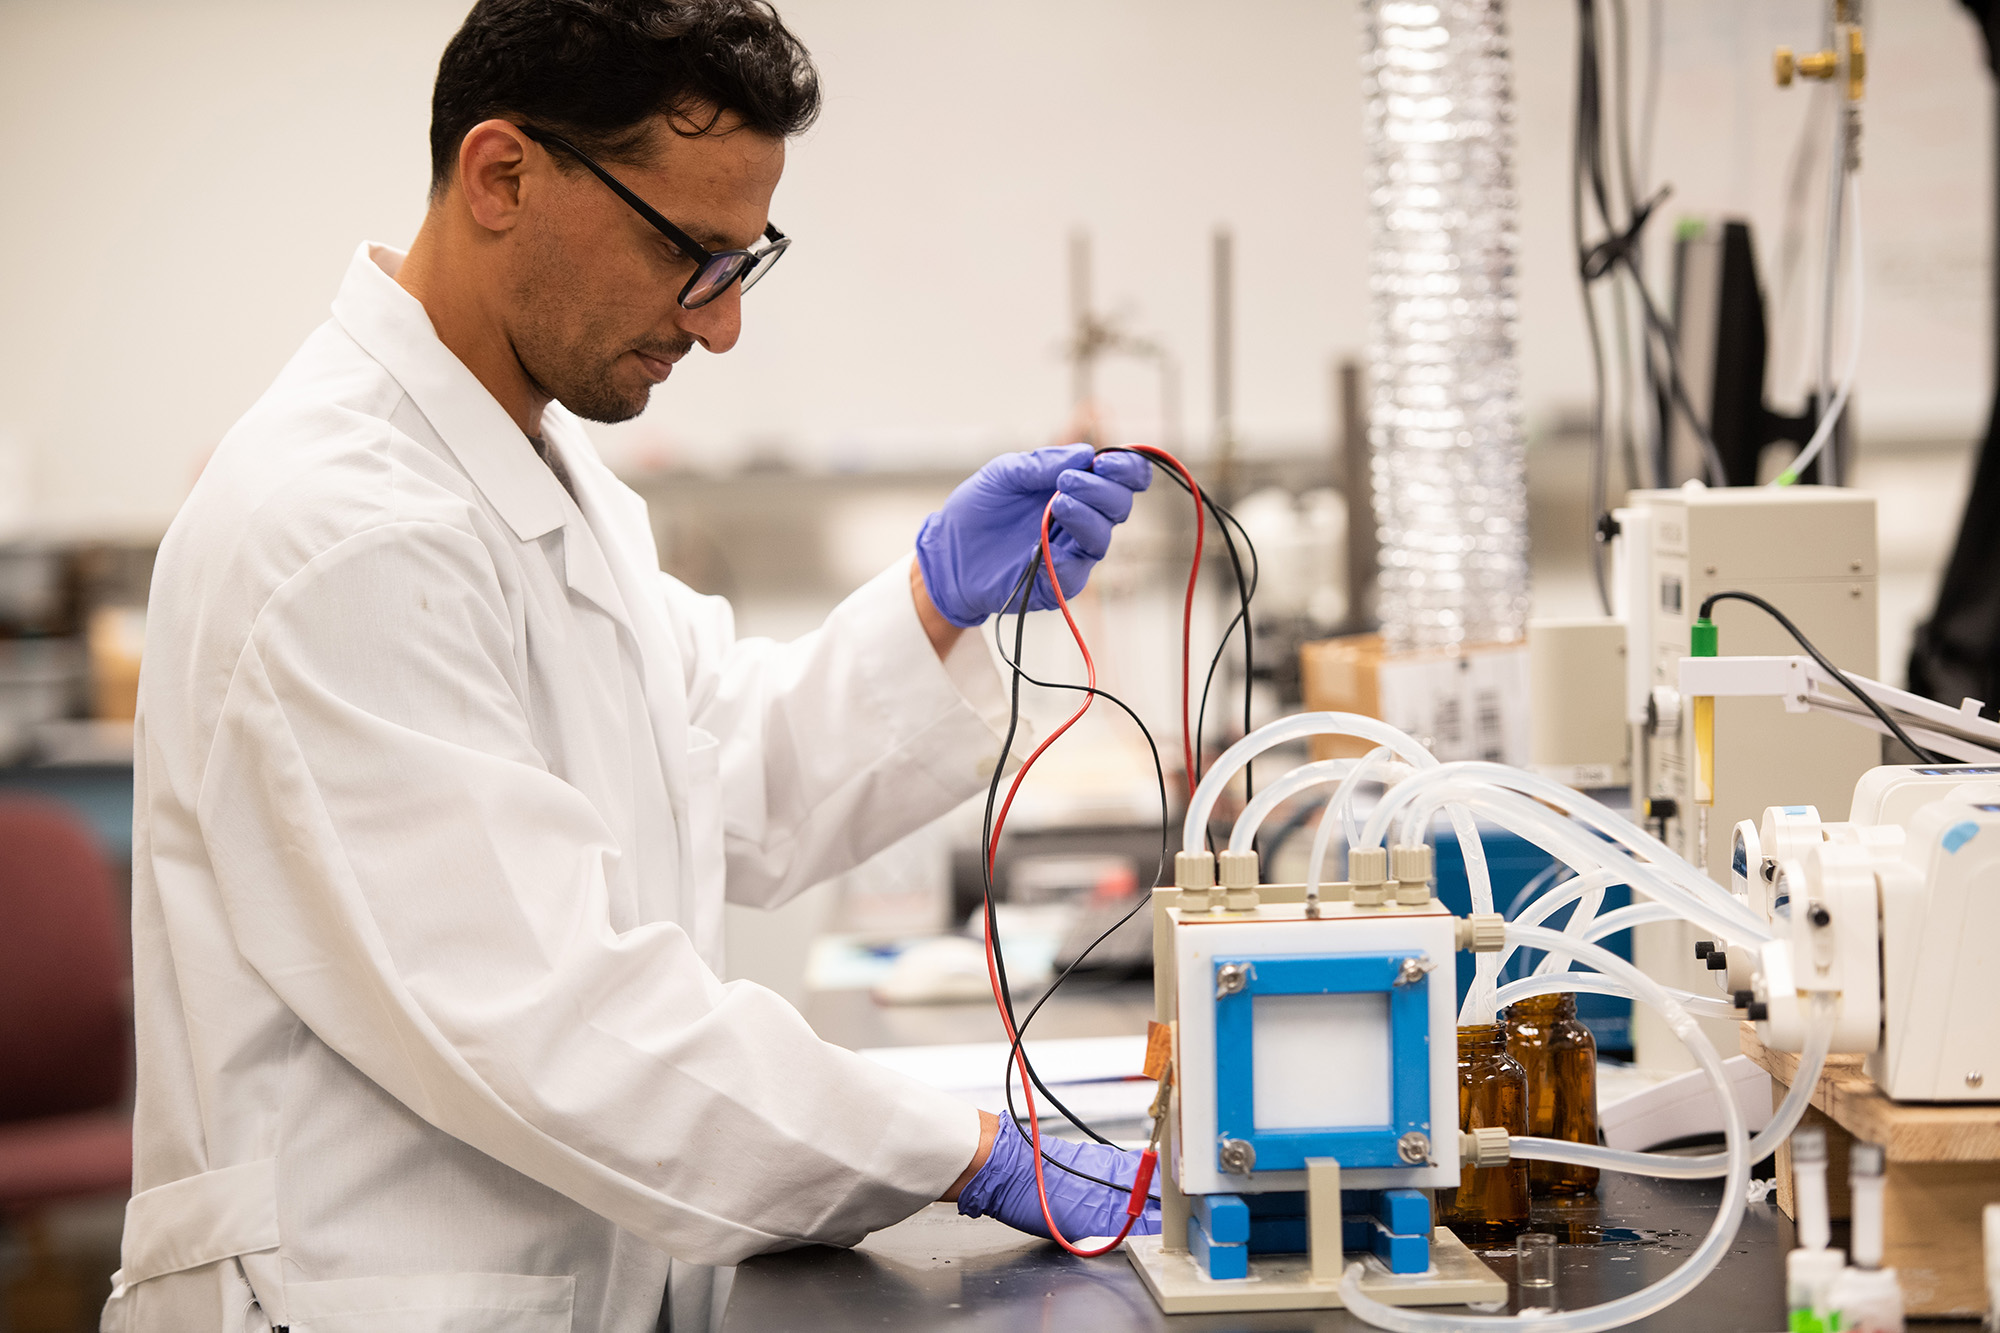 University of Iowa student working in a lab